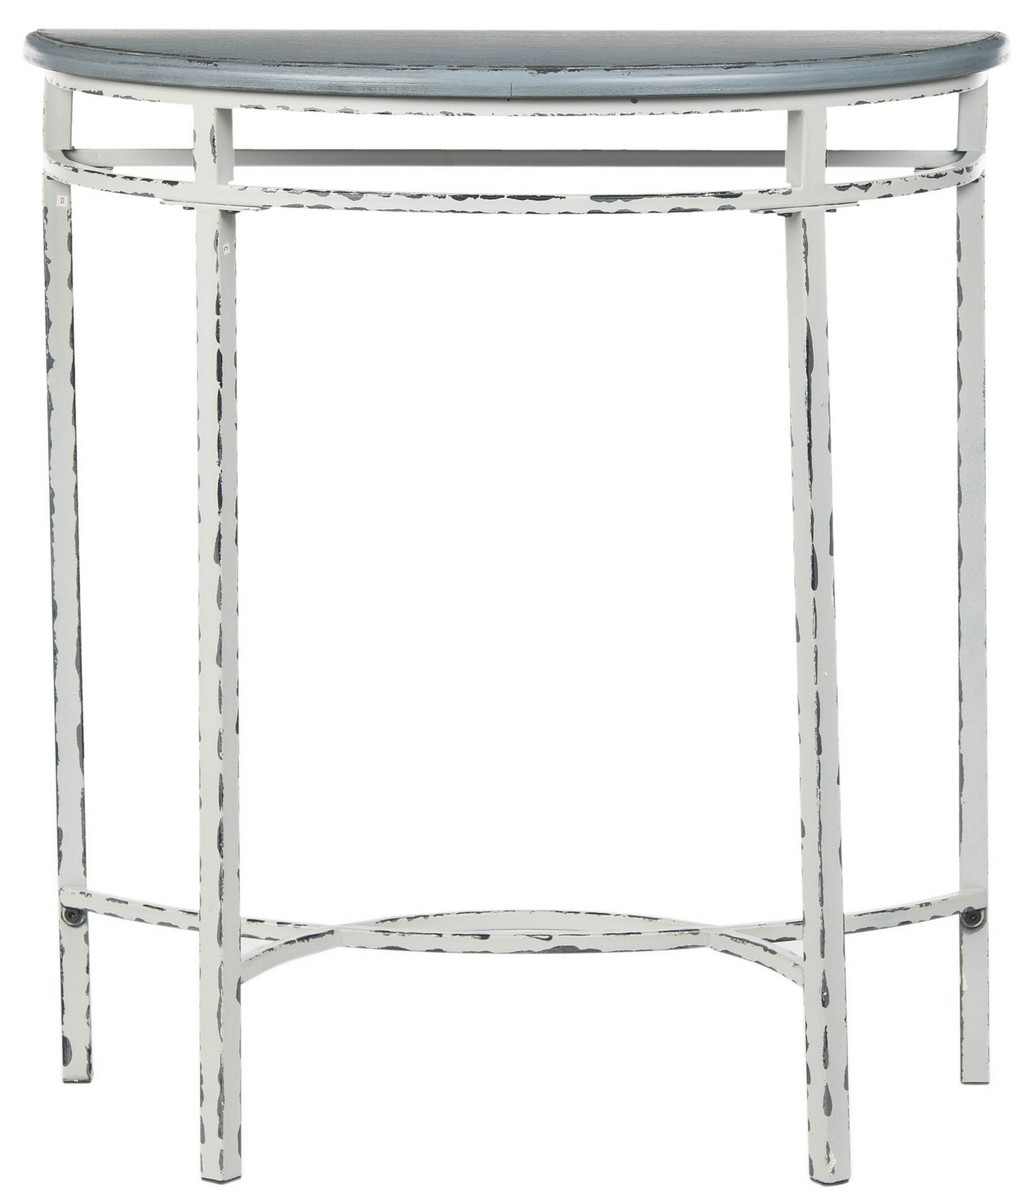 Petite Console Design Amh6552a Consoles Furniture By Safavieh